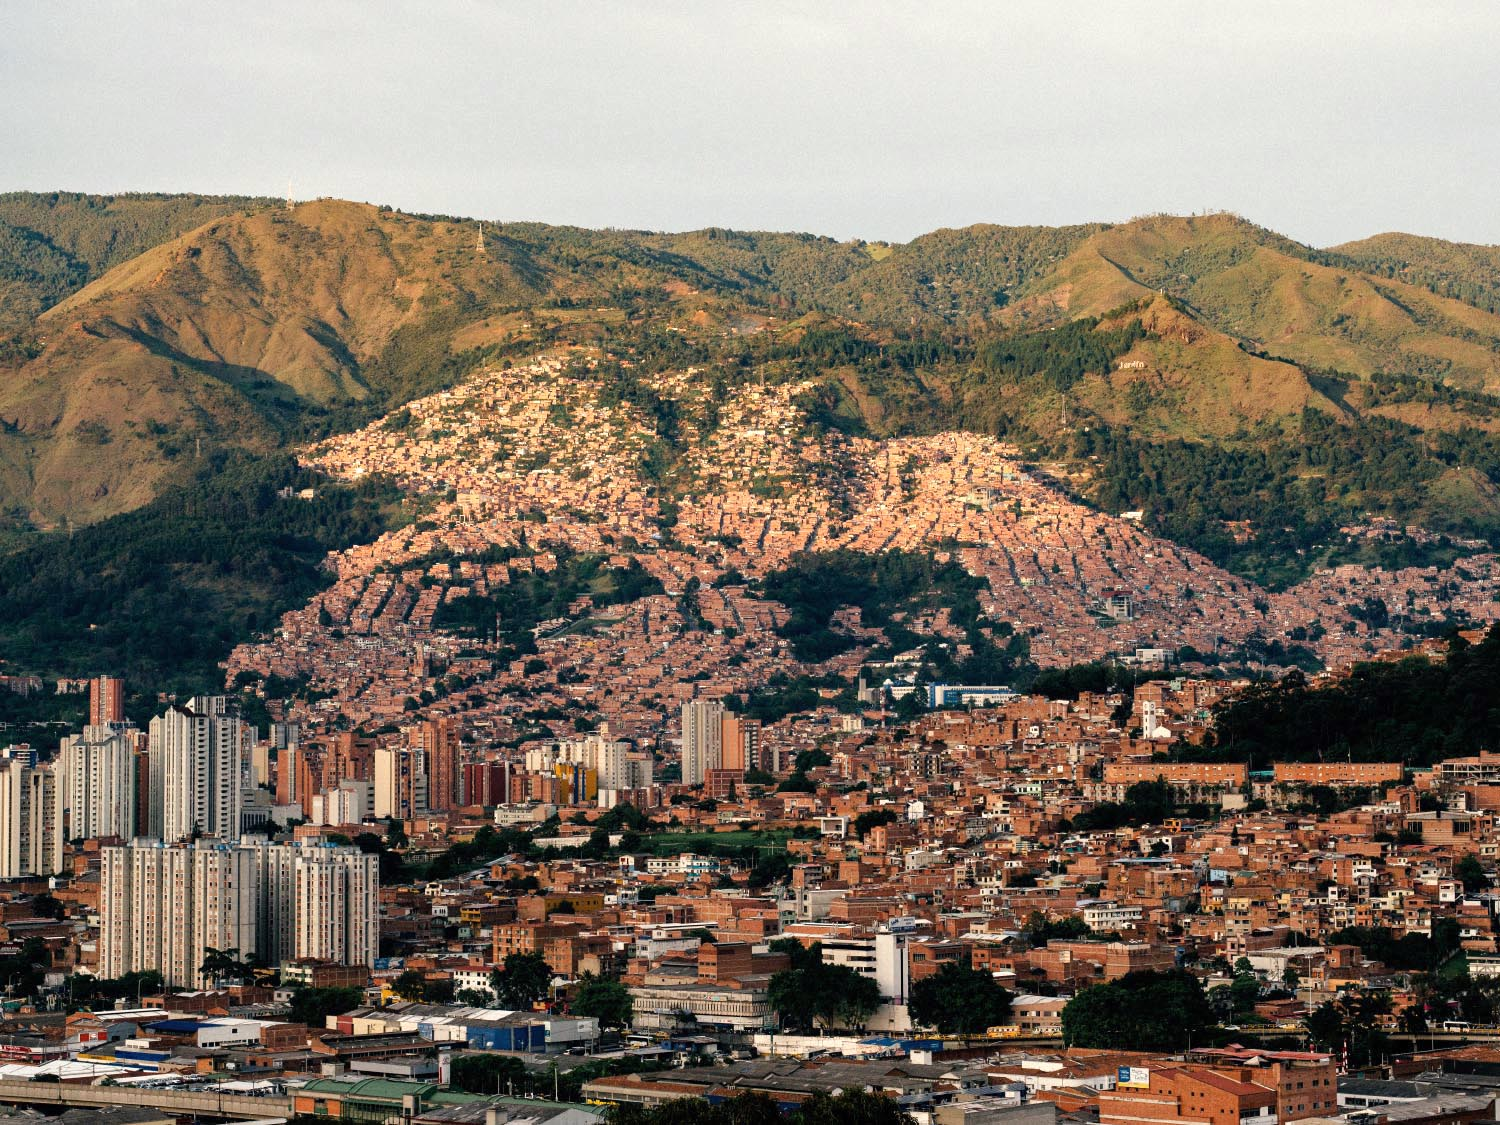 Travel photography example: Medellin, Colombia. Urbanscape.